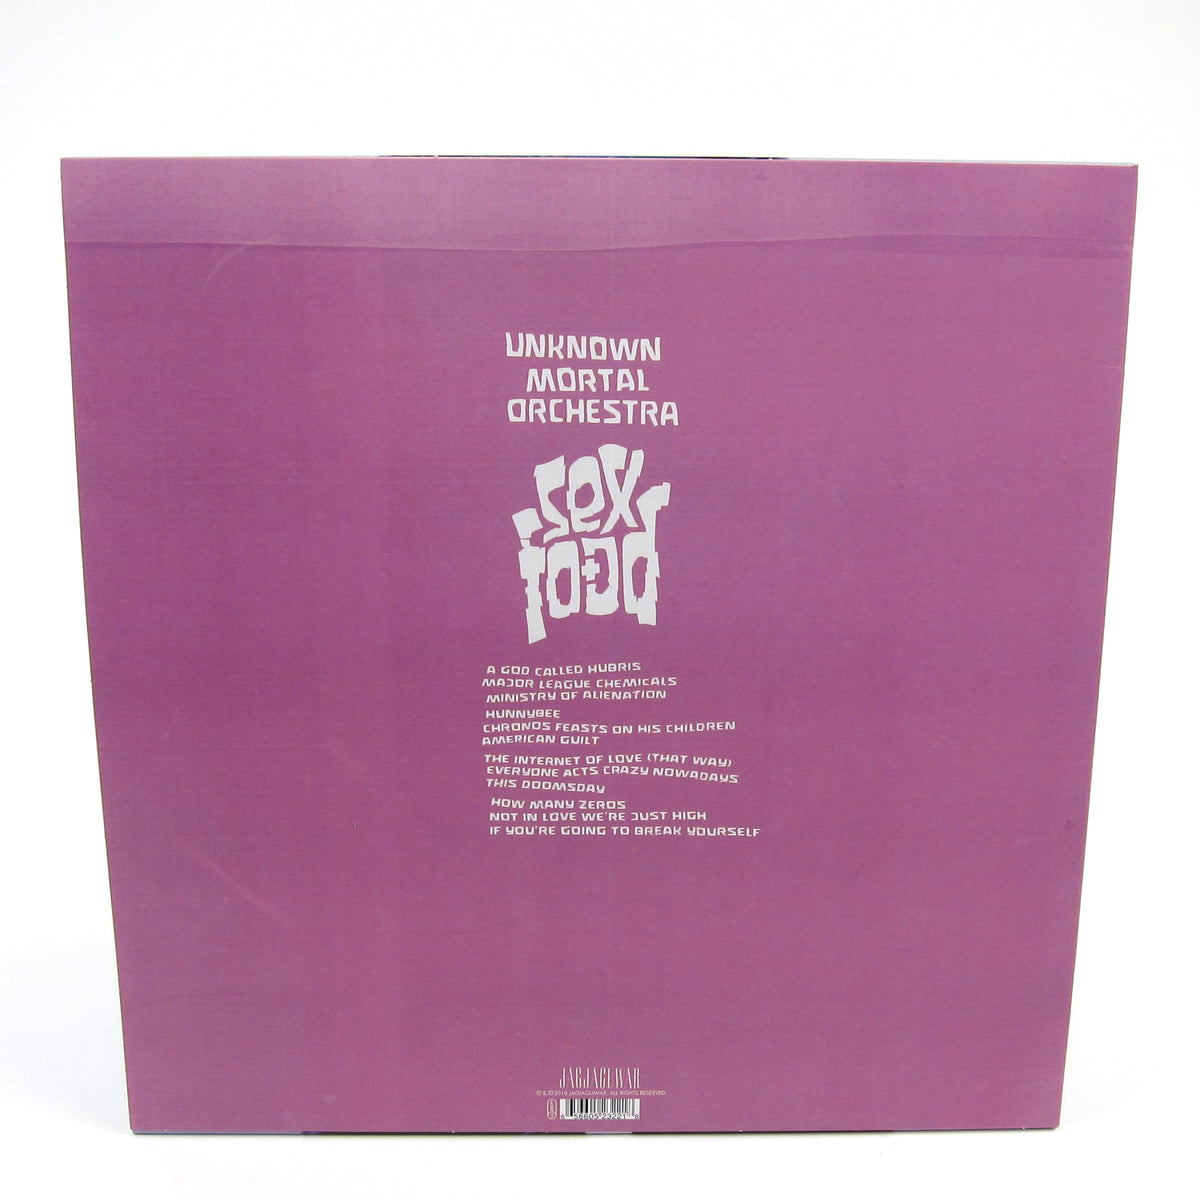 Unknown Mortal Orchestra: Sex & Food (Indie Exclusive Colored Vinyl) Vinyl LP